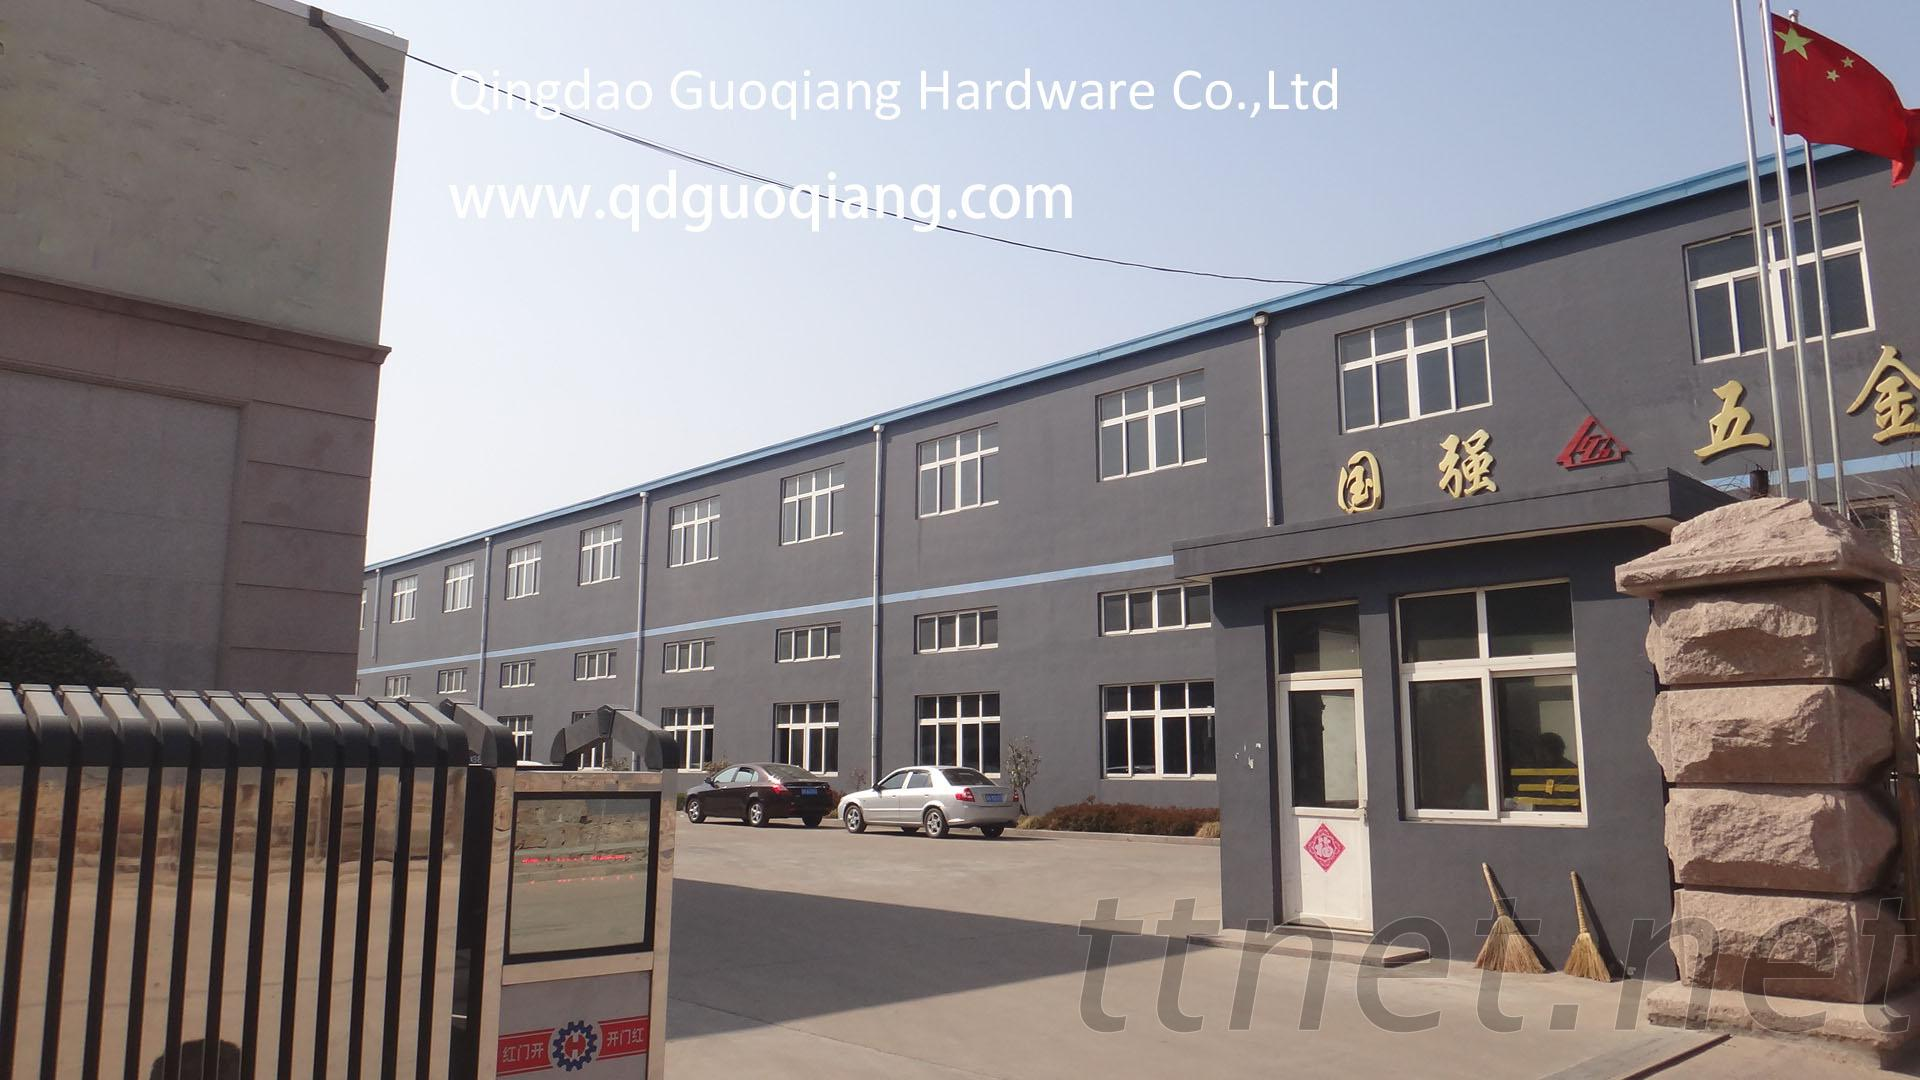 Qingdao Guoqiang Hardware Co., Ltd